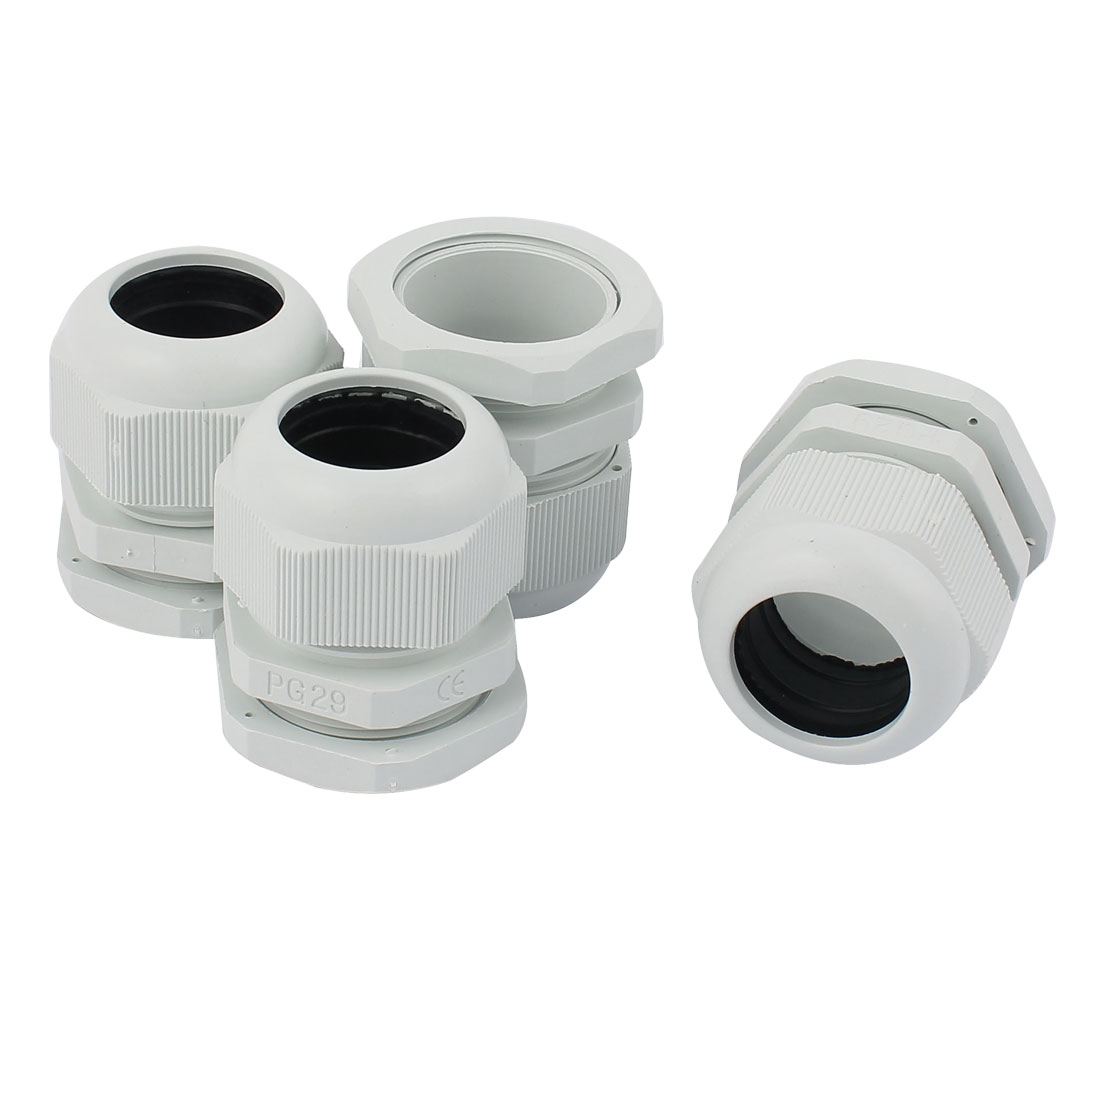 4 Pcs Plastic PG29 18-25mm Dia Wire Cord Grip Pipe Connector Waterproof Cable Gland